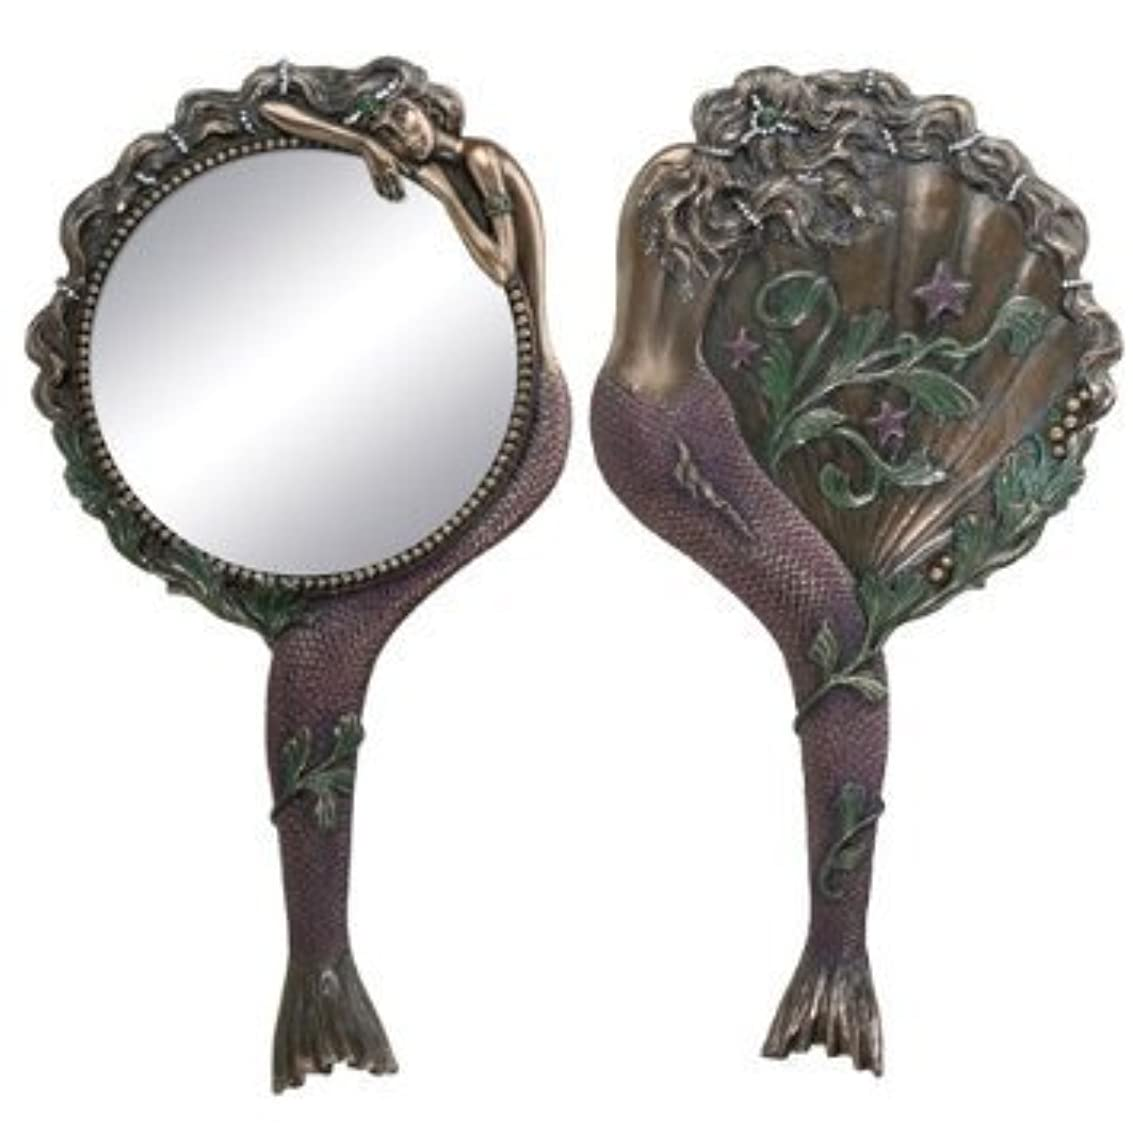 ドロー始める高いArt Nouveau Collectible Mermaid Hand Mirror Nymph Decoration by Summit